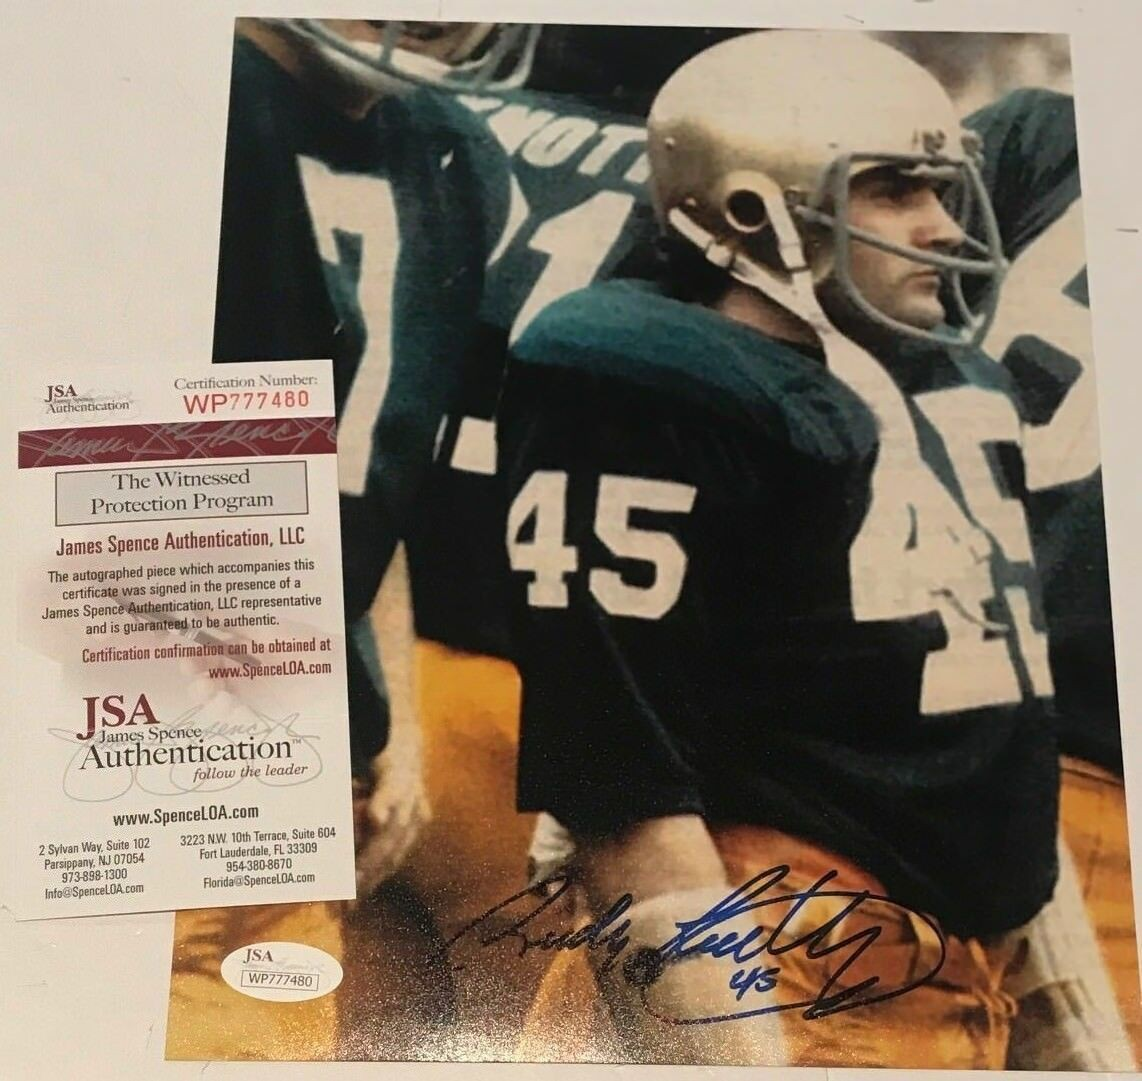 Rudy Ruettiger Autographed Signed Notre Dame 8x10 Photo - JSA Authentic bd77ac8c7